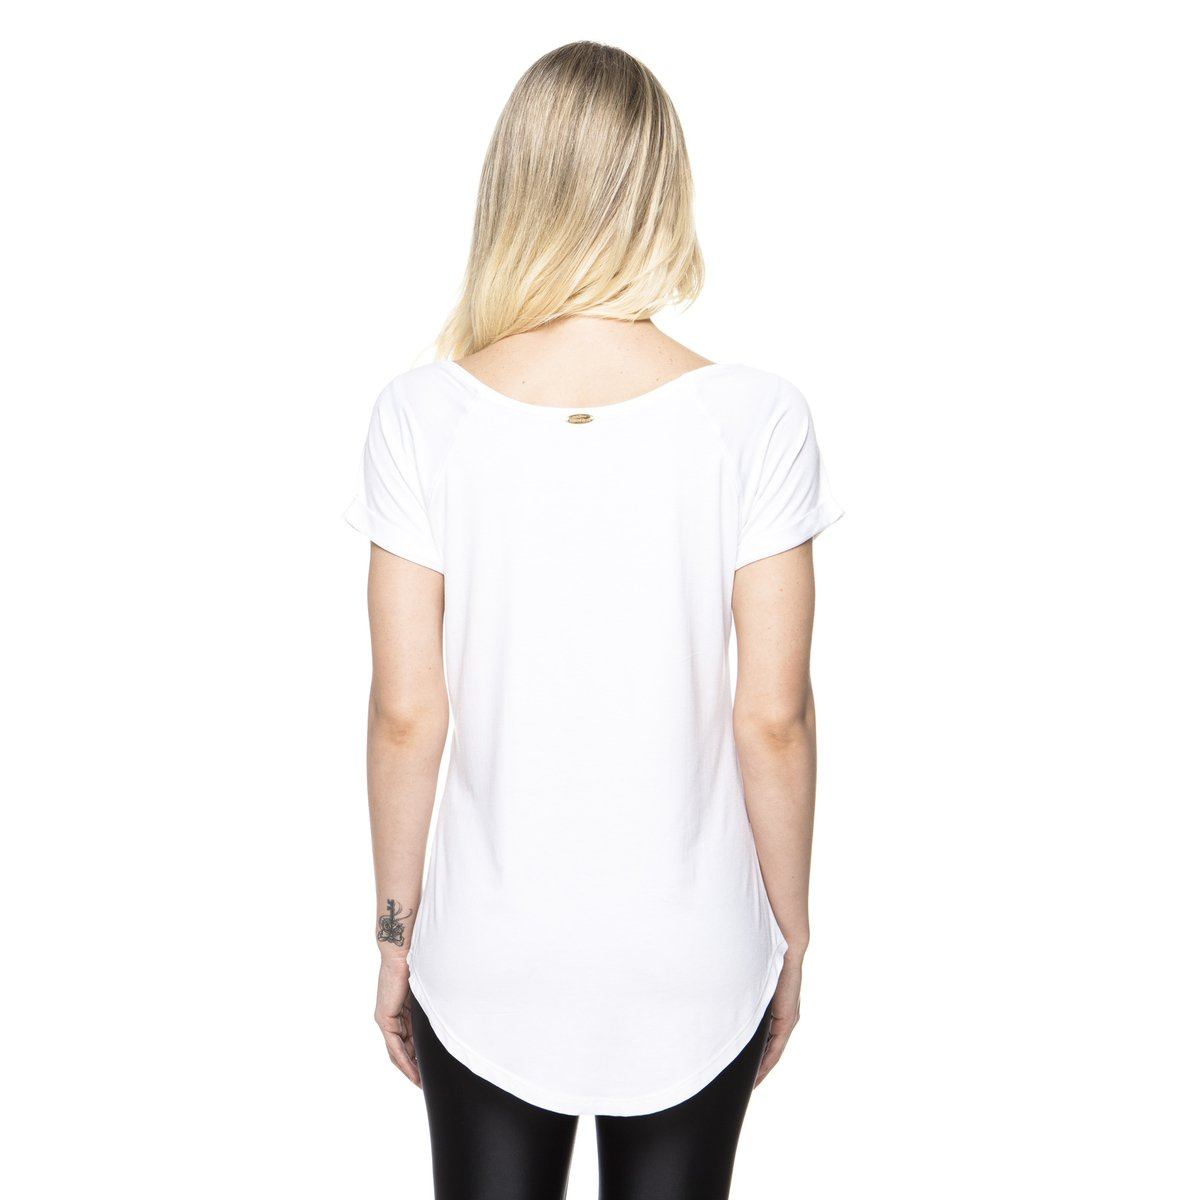 New Vis Camiseta Pocket Branco Up Camiseta New H4qw0B8